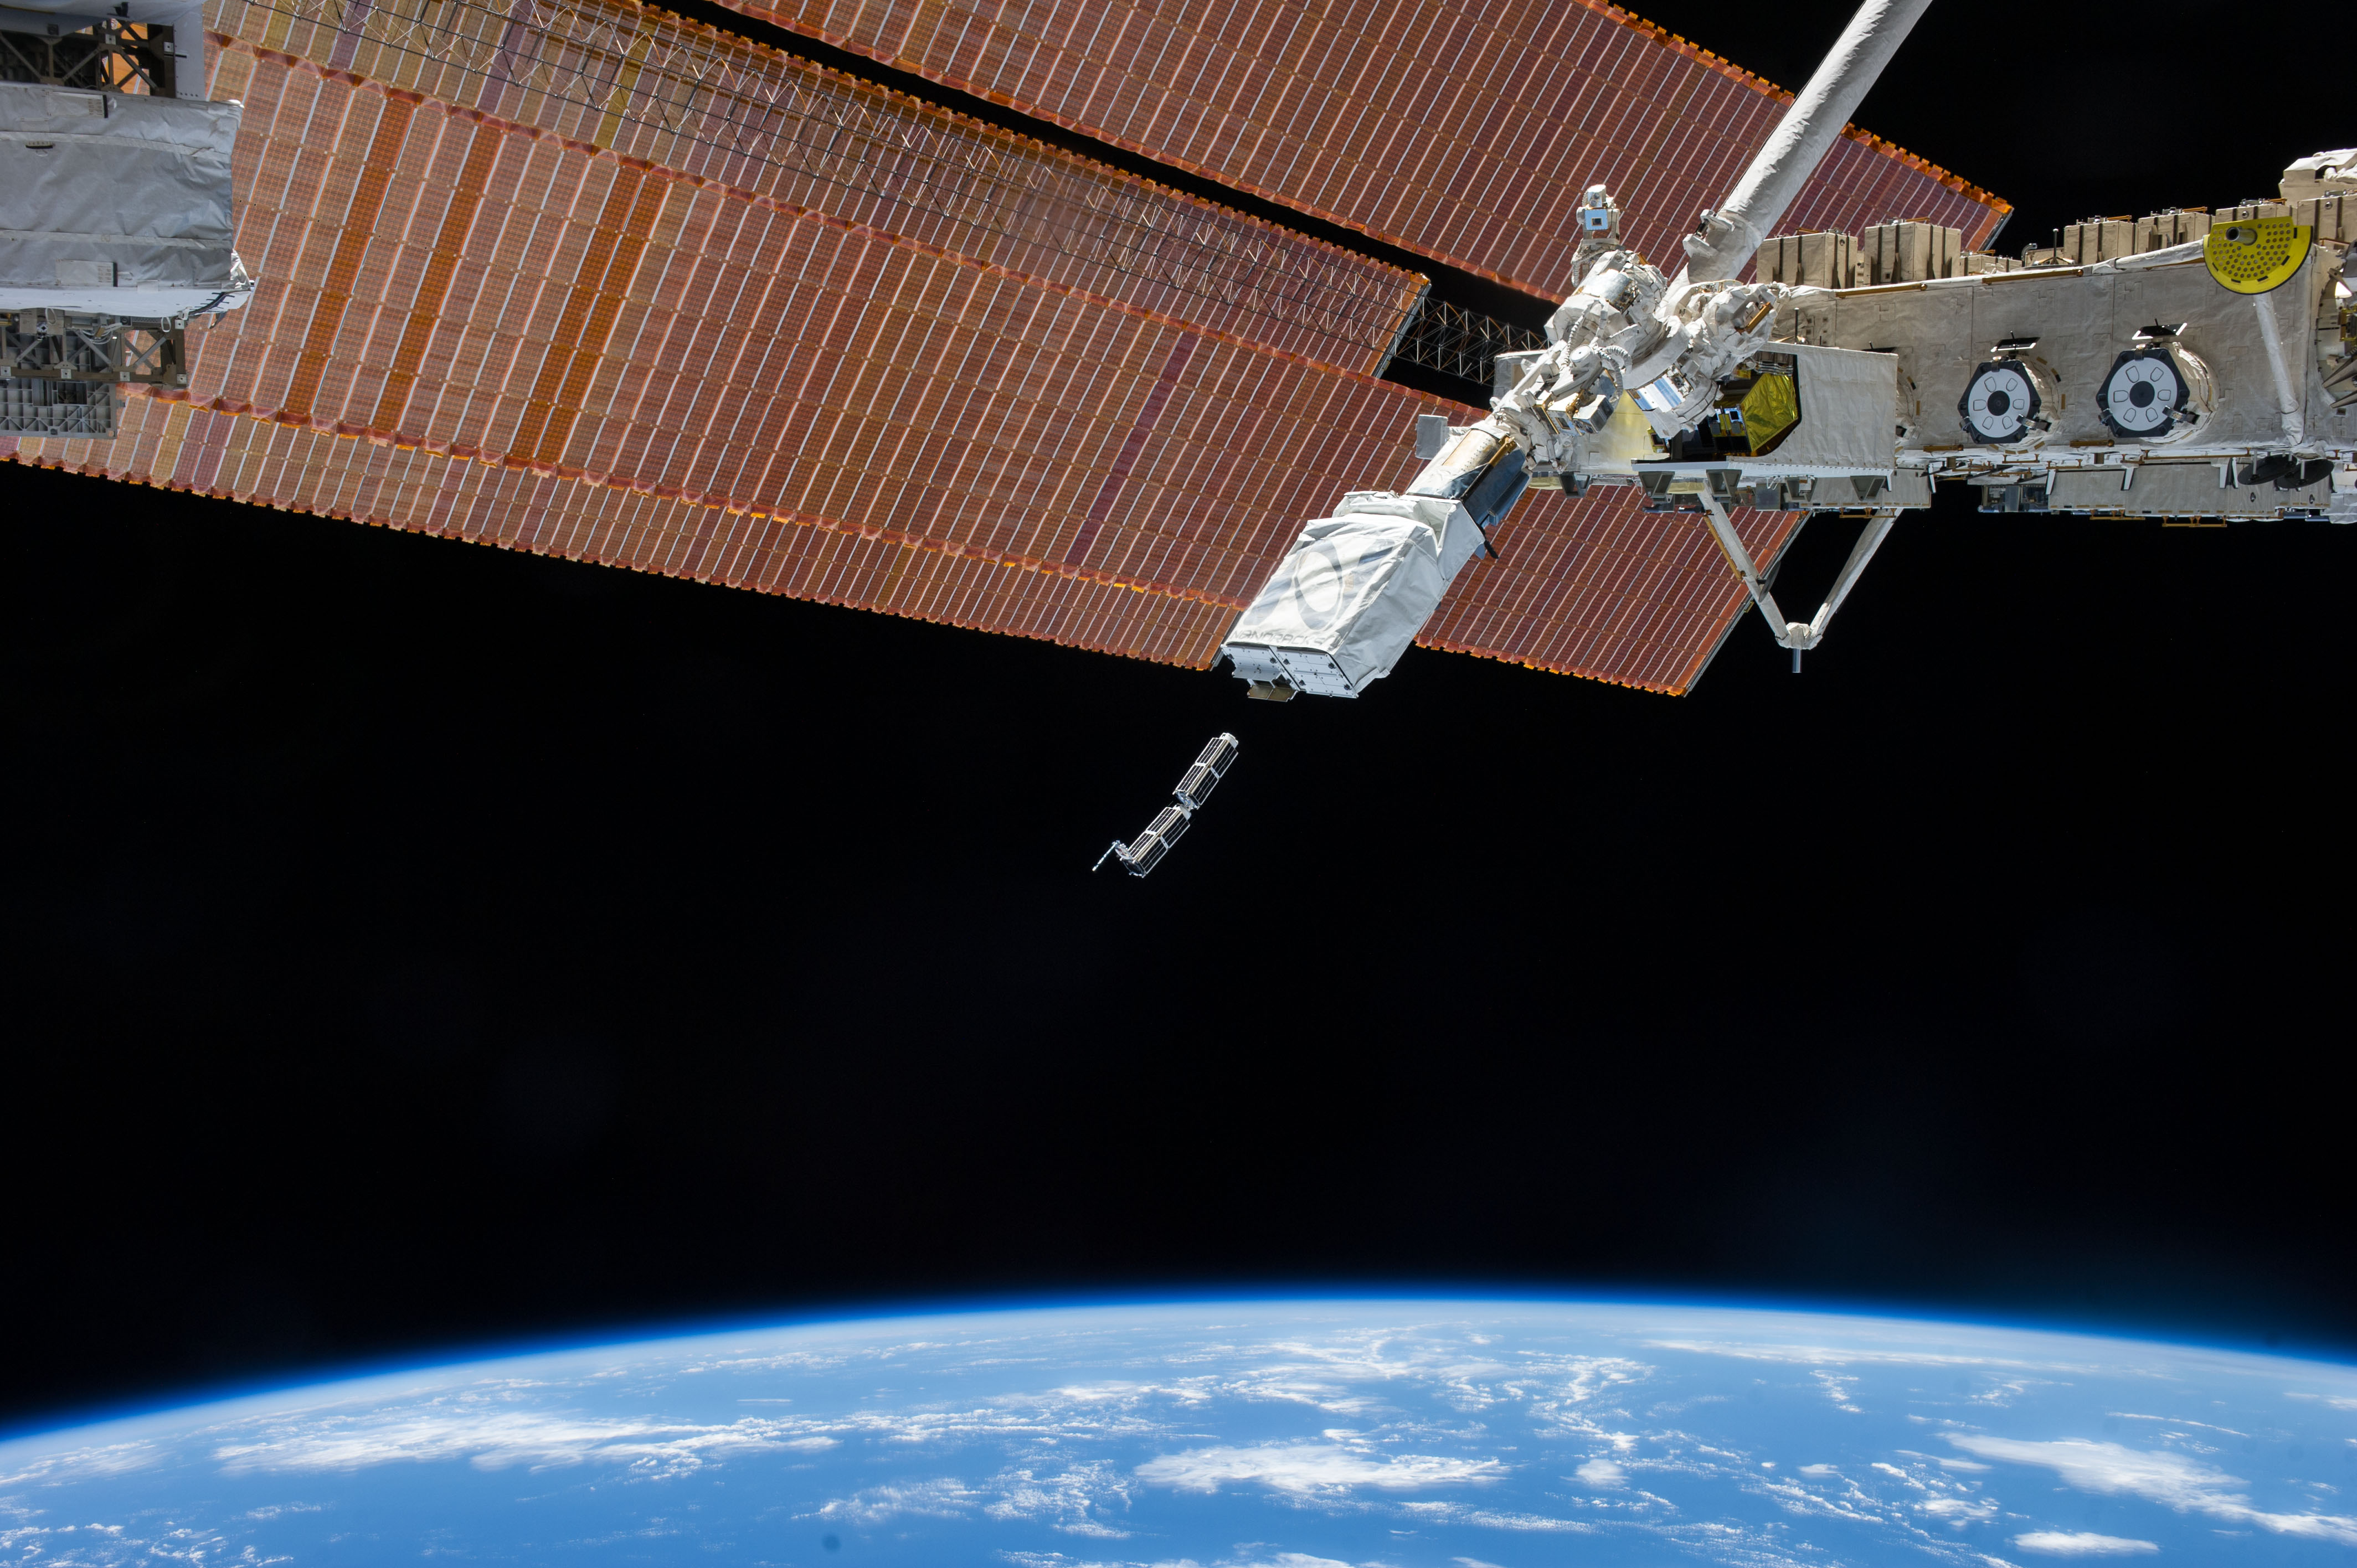 A Planet Labs dove satellite is released from the International Space Station. Photo courtesy of Planet Labs.